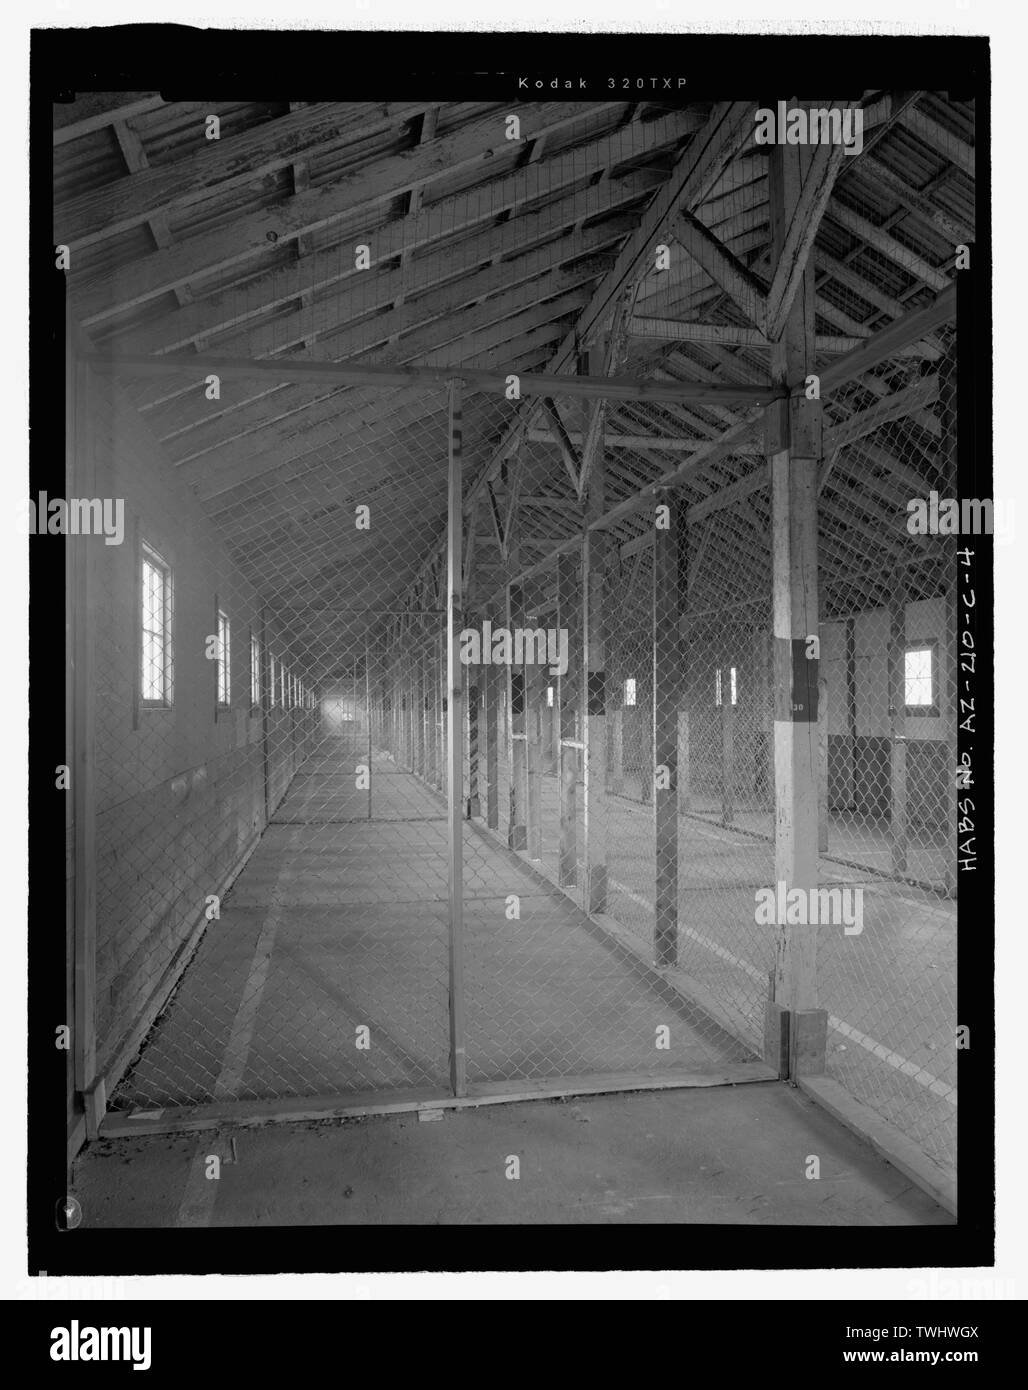 SIDE AISLE FROM WEST SHOWING TIMBER STRUCTURE AND ADDED WIRE PARTITIONS - Fort Huachuca, Cavalry Stable, Clarkson Road, Sierra Vista, Cochise County, AZ - Stock Image